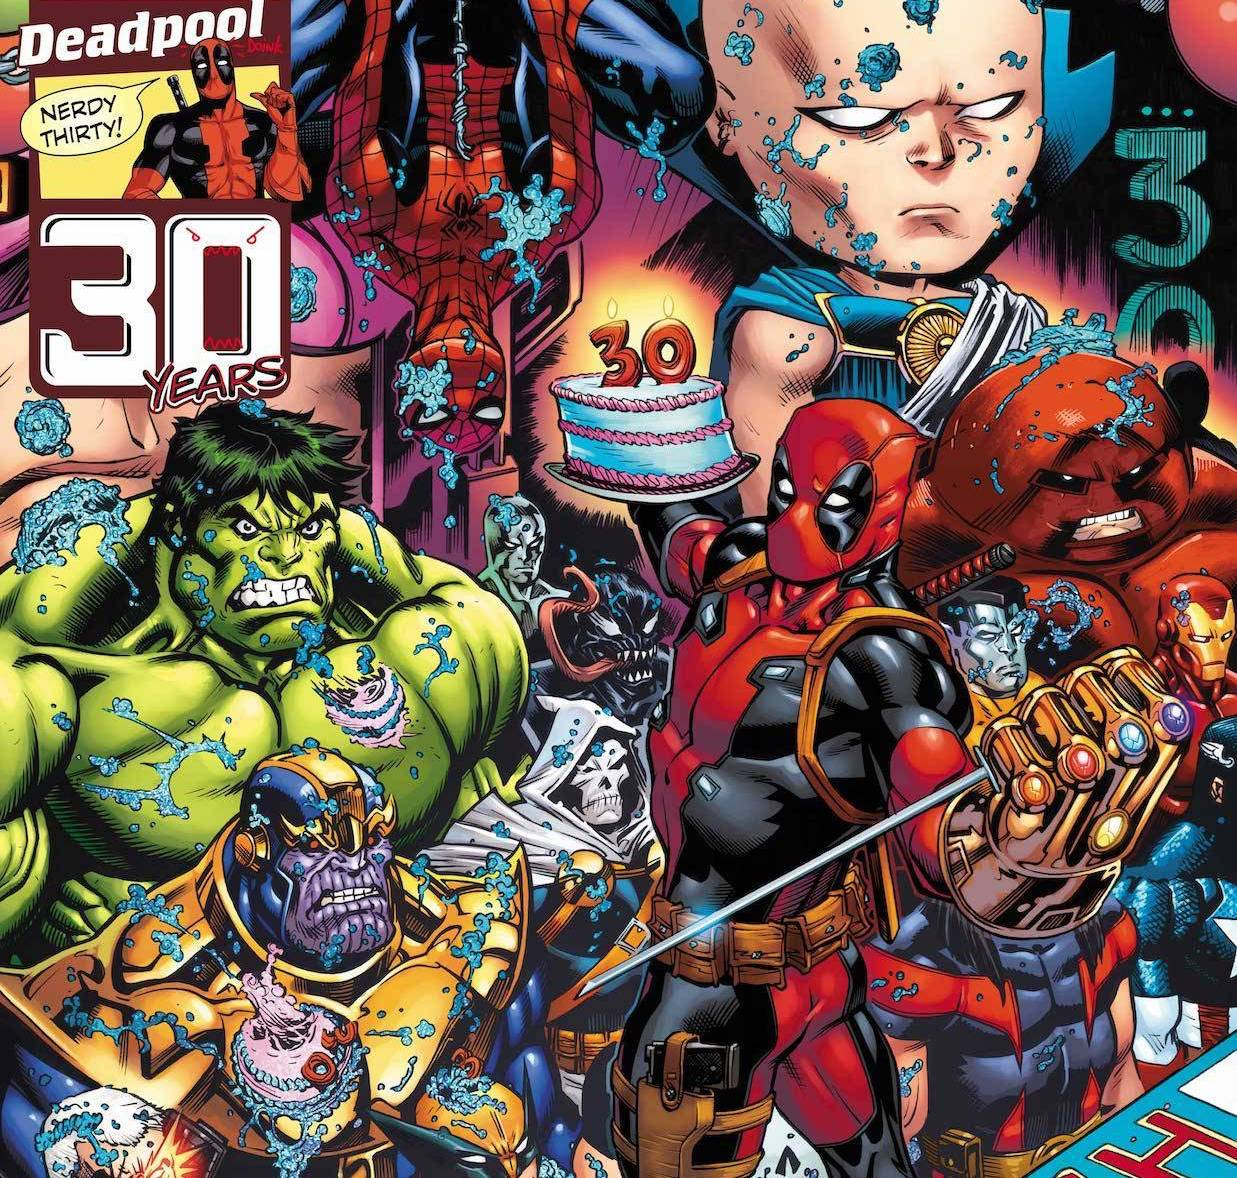 Marvel throwing birthday party for Deadpool February 25th